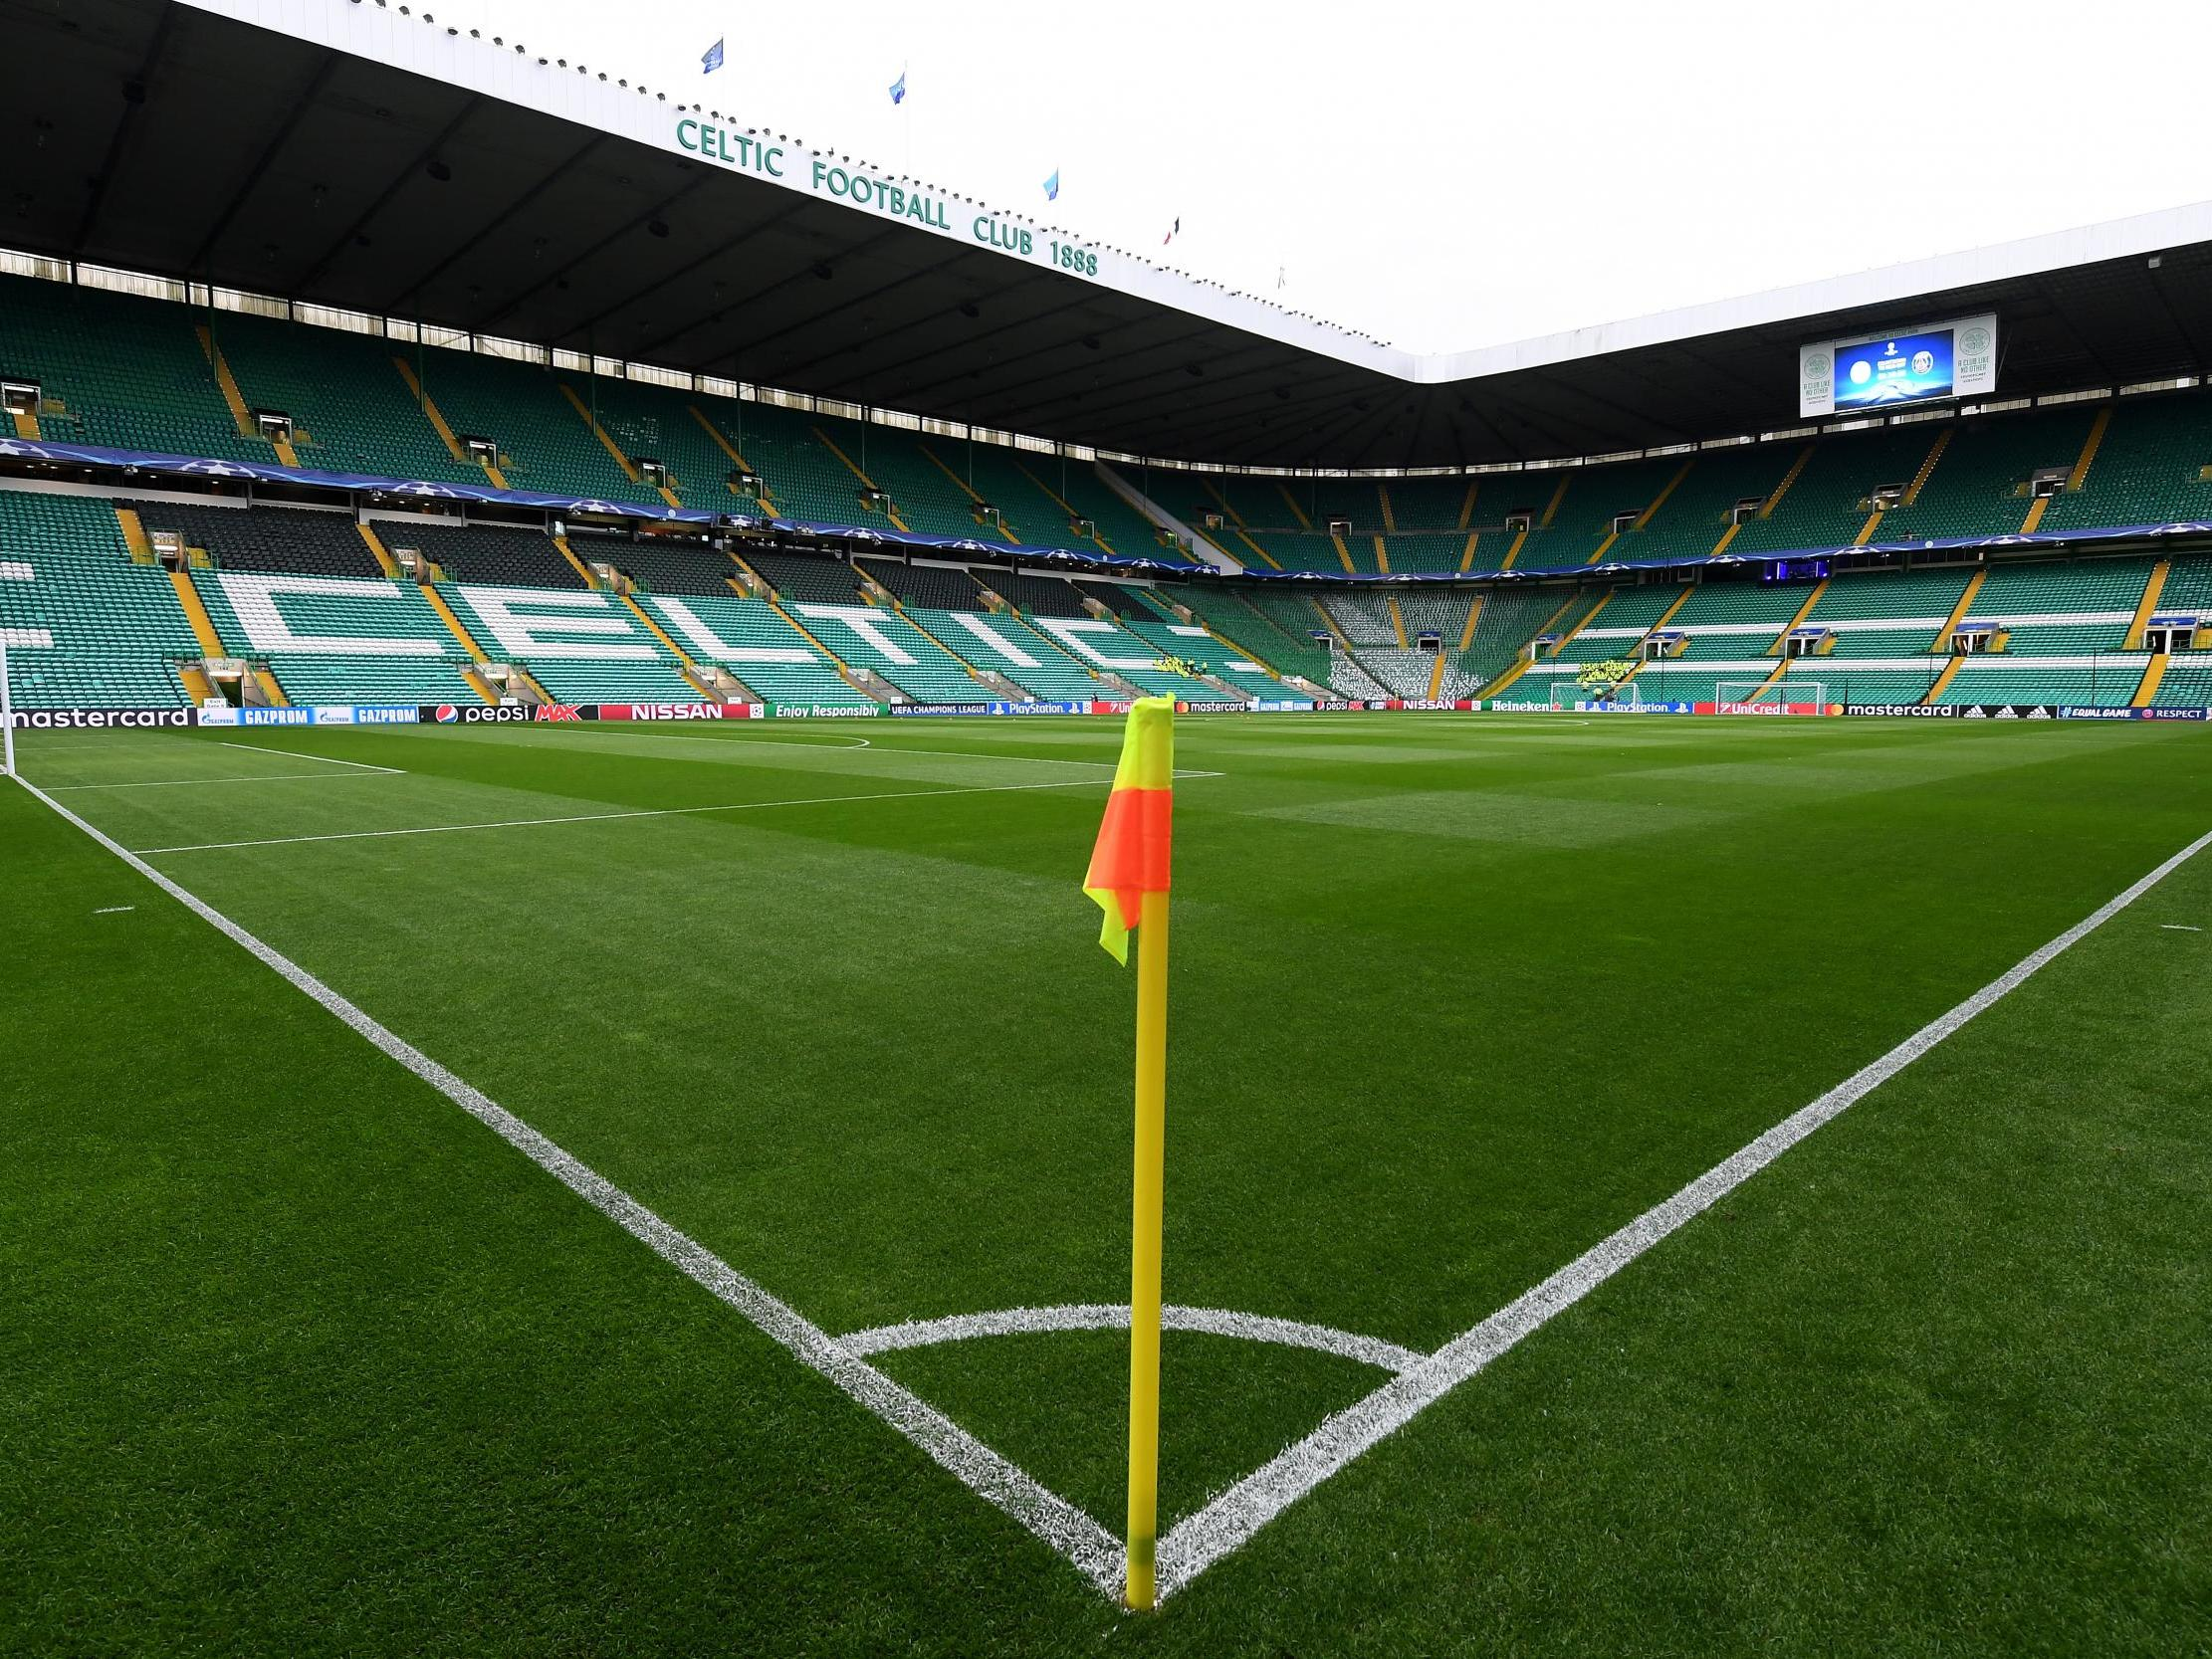 Celtic transfer news: Club launch investigation after summer plans 'leaked' on Twitter